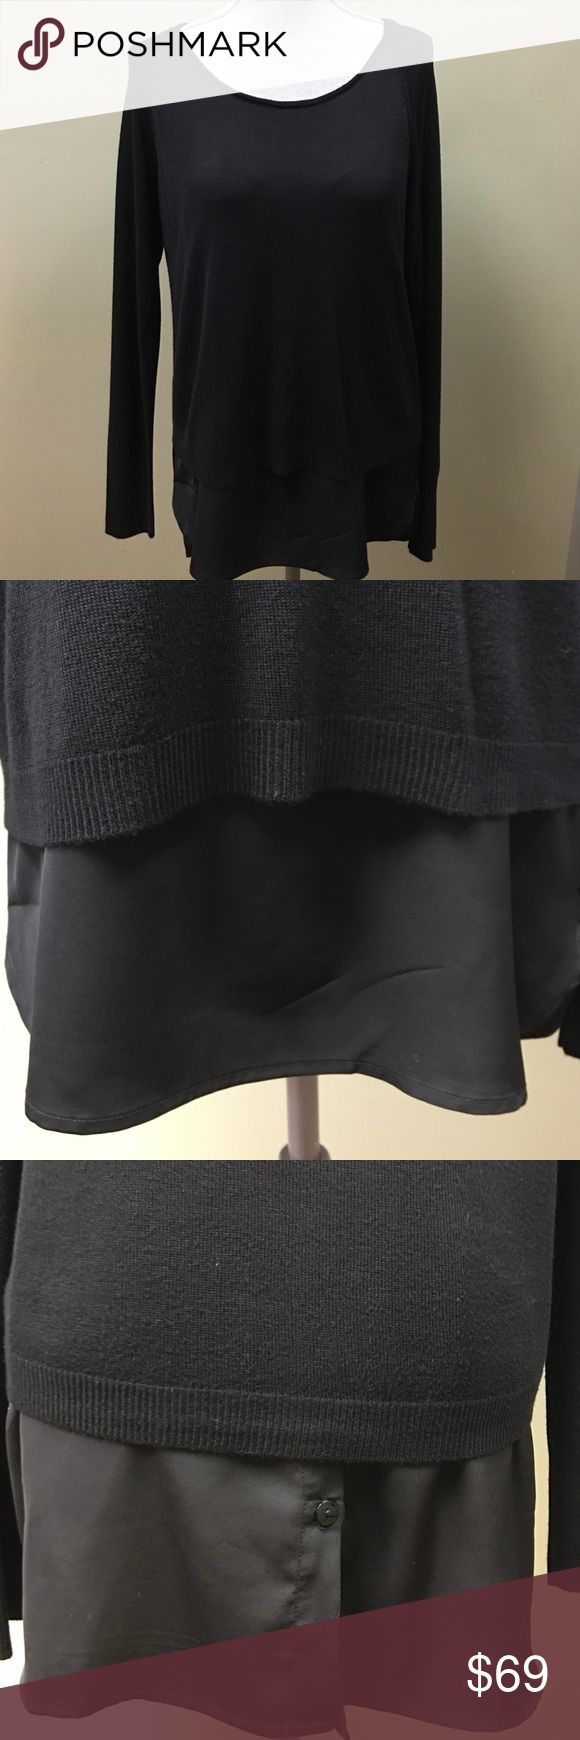 Black Double Layered Top This black double layered top has a long chiffon under tank sewn in and peeks out under the top sweater layer. Button details on the backside. Brand new with tags! Yest  Tops Blouses